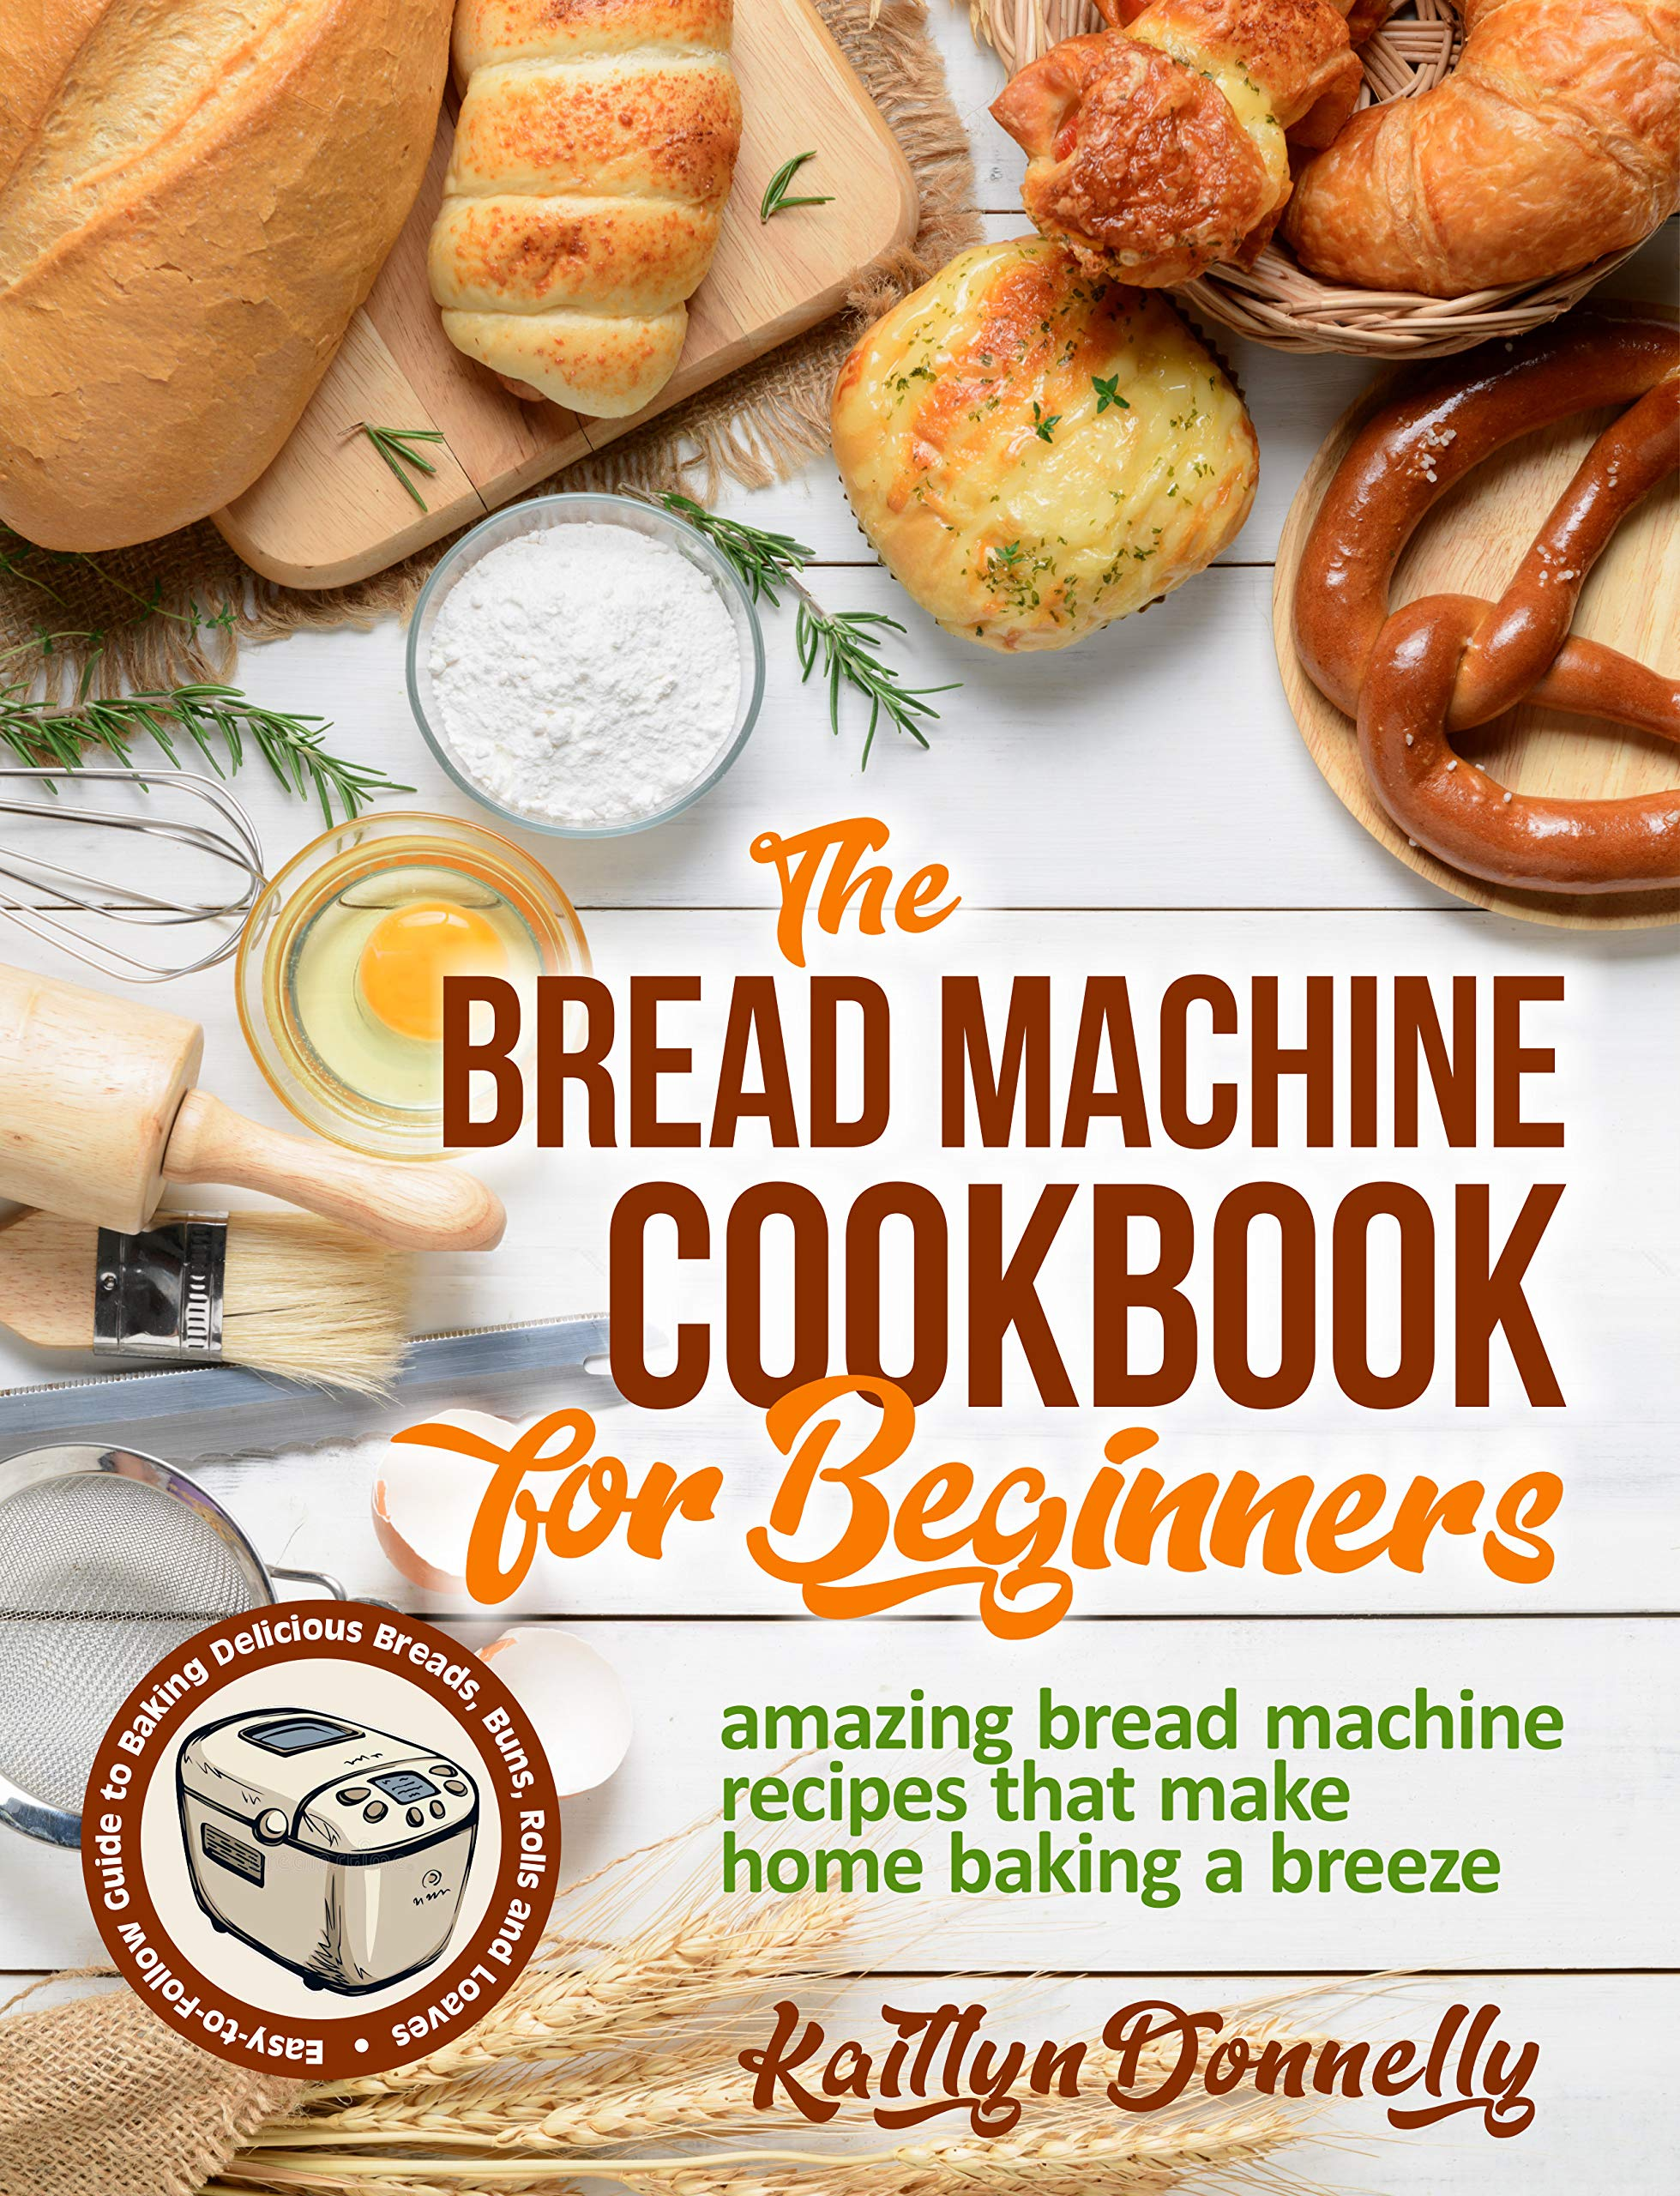 The Bread Machine Cookbook for Beginners: Amazing Bread Machine Recipes That Make Home Baking a Breeze. Easy-to-Follow Guide to Baking Delicious Breads, Buns, Rolls and Loaves